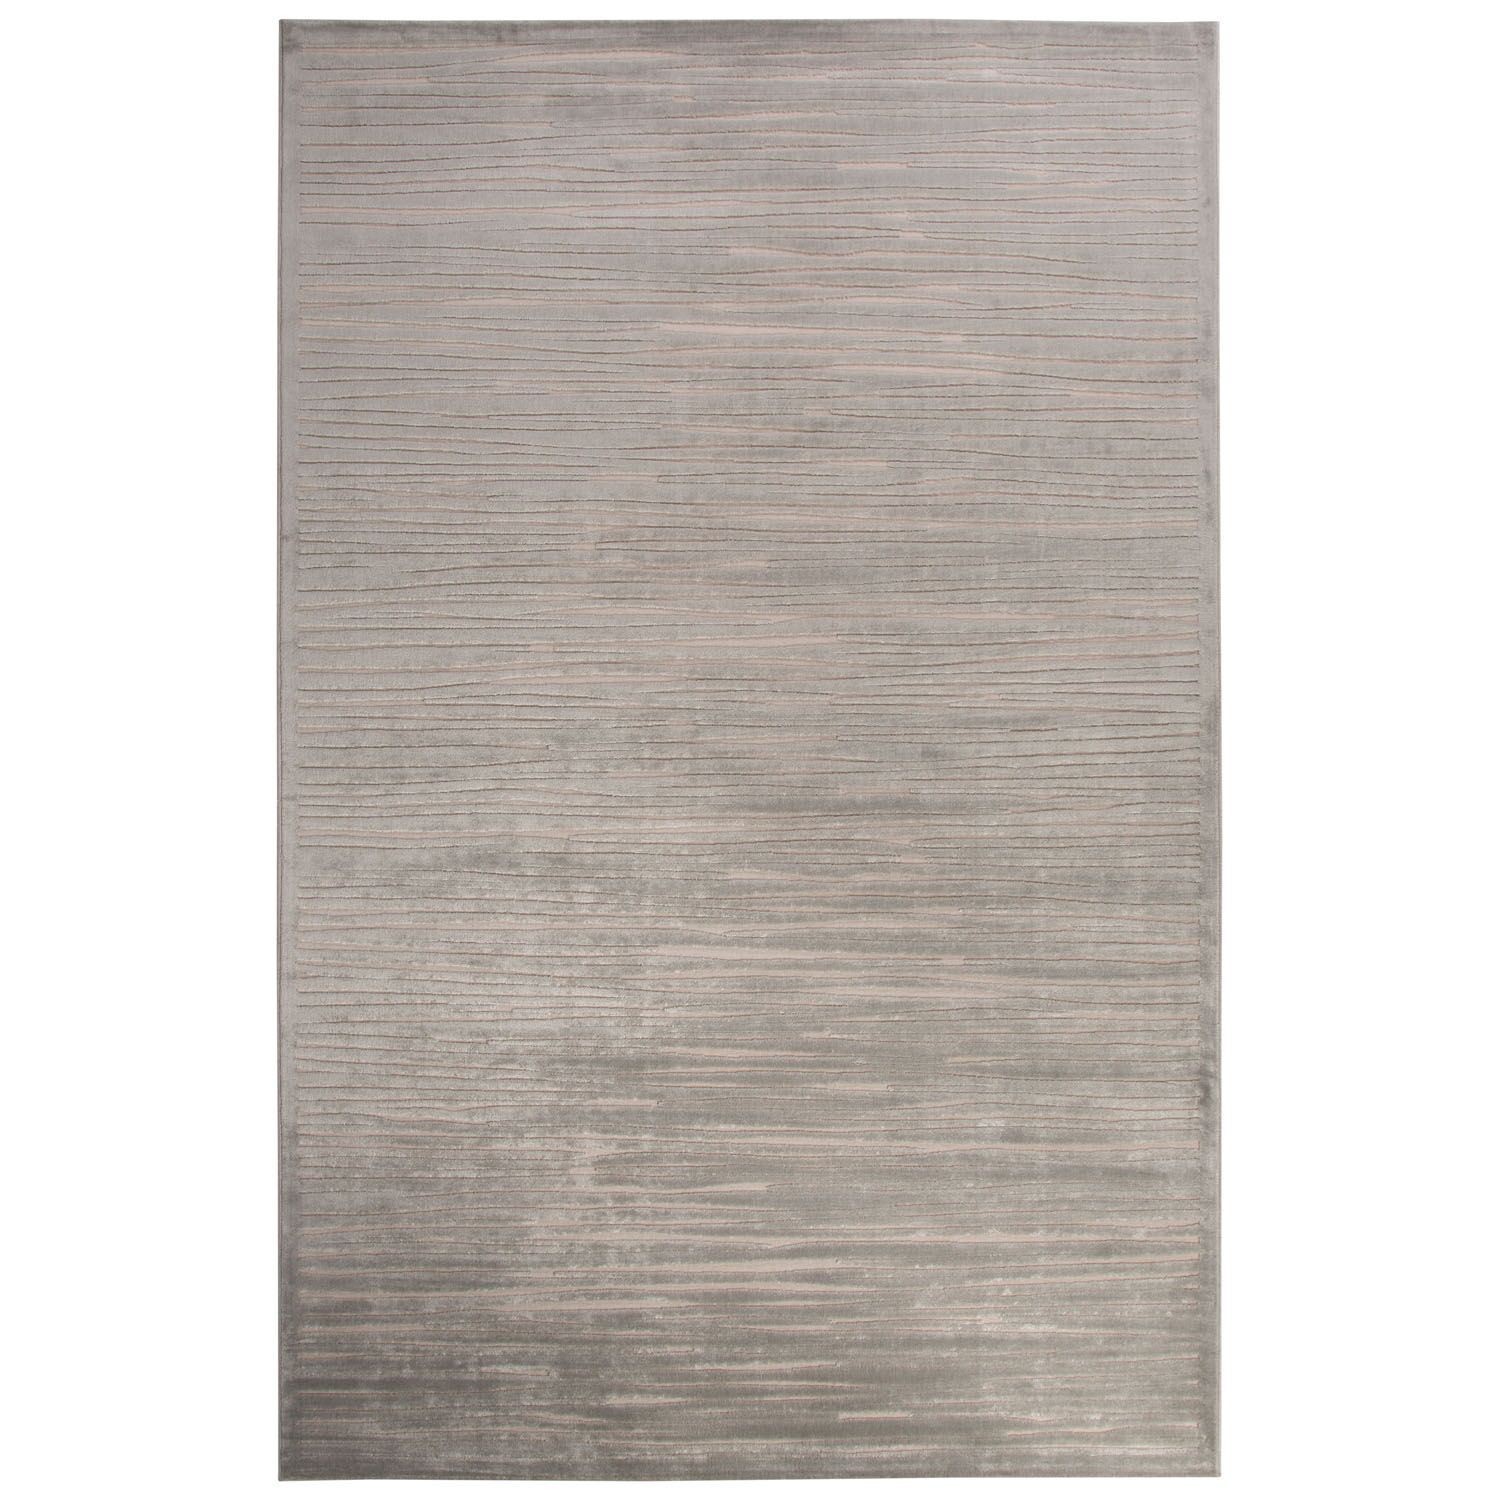 Pariaman Light Gray/Ivory Area Rug Rug Size: Rectangle 5' x 7'6